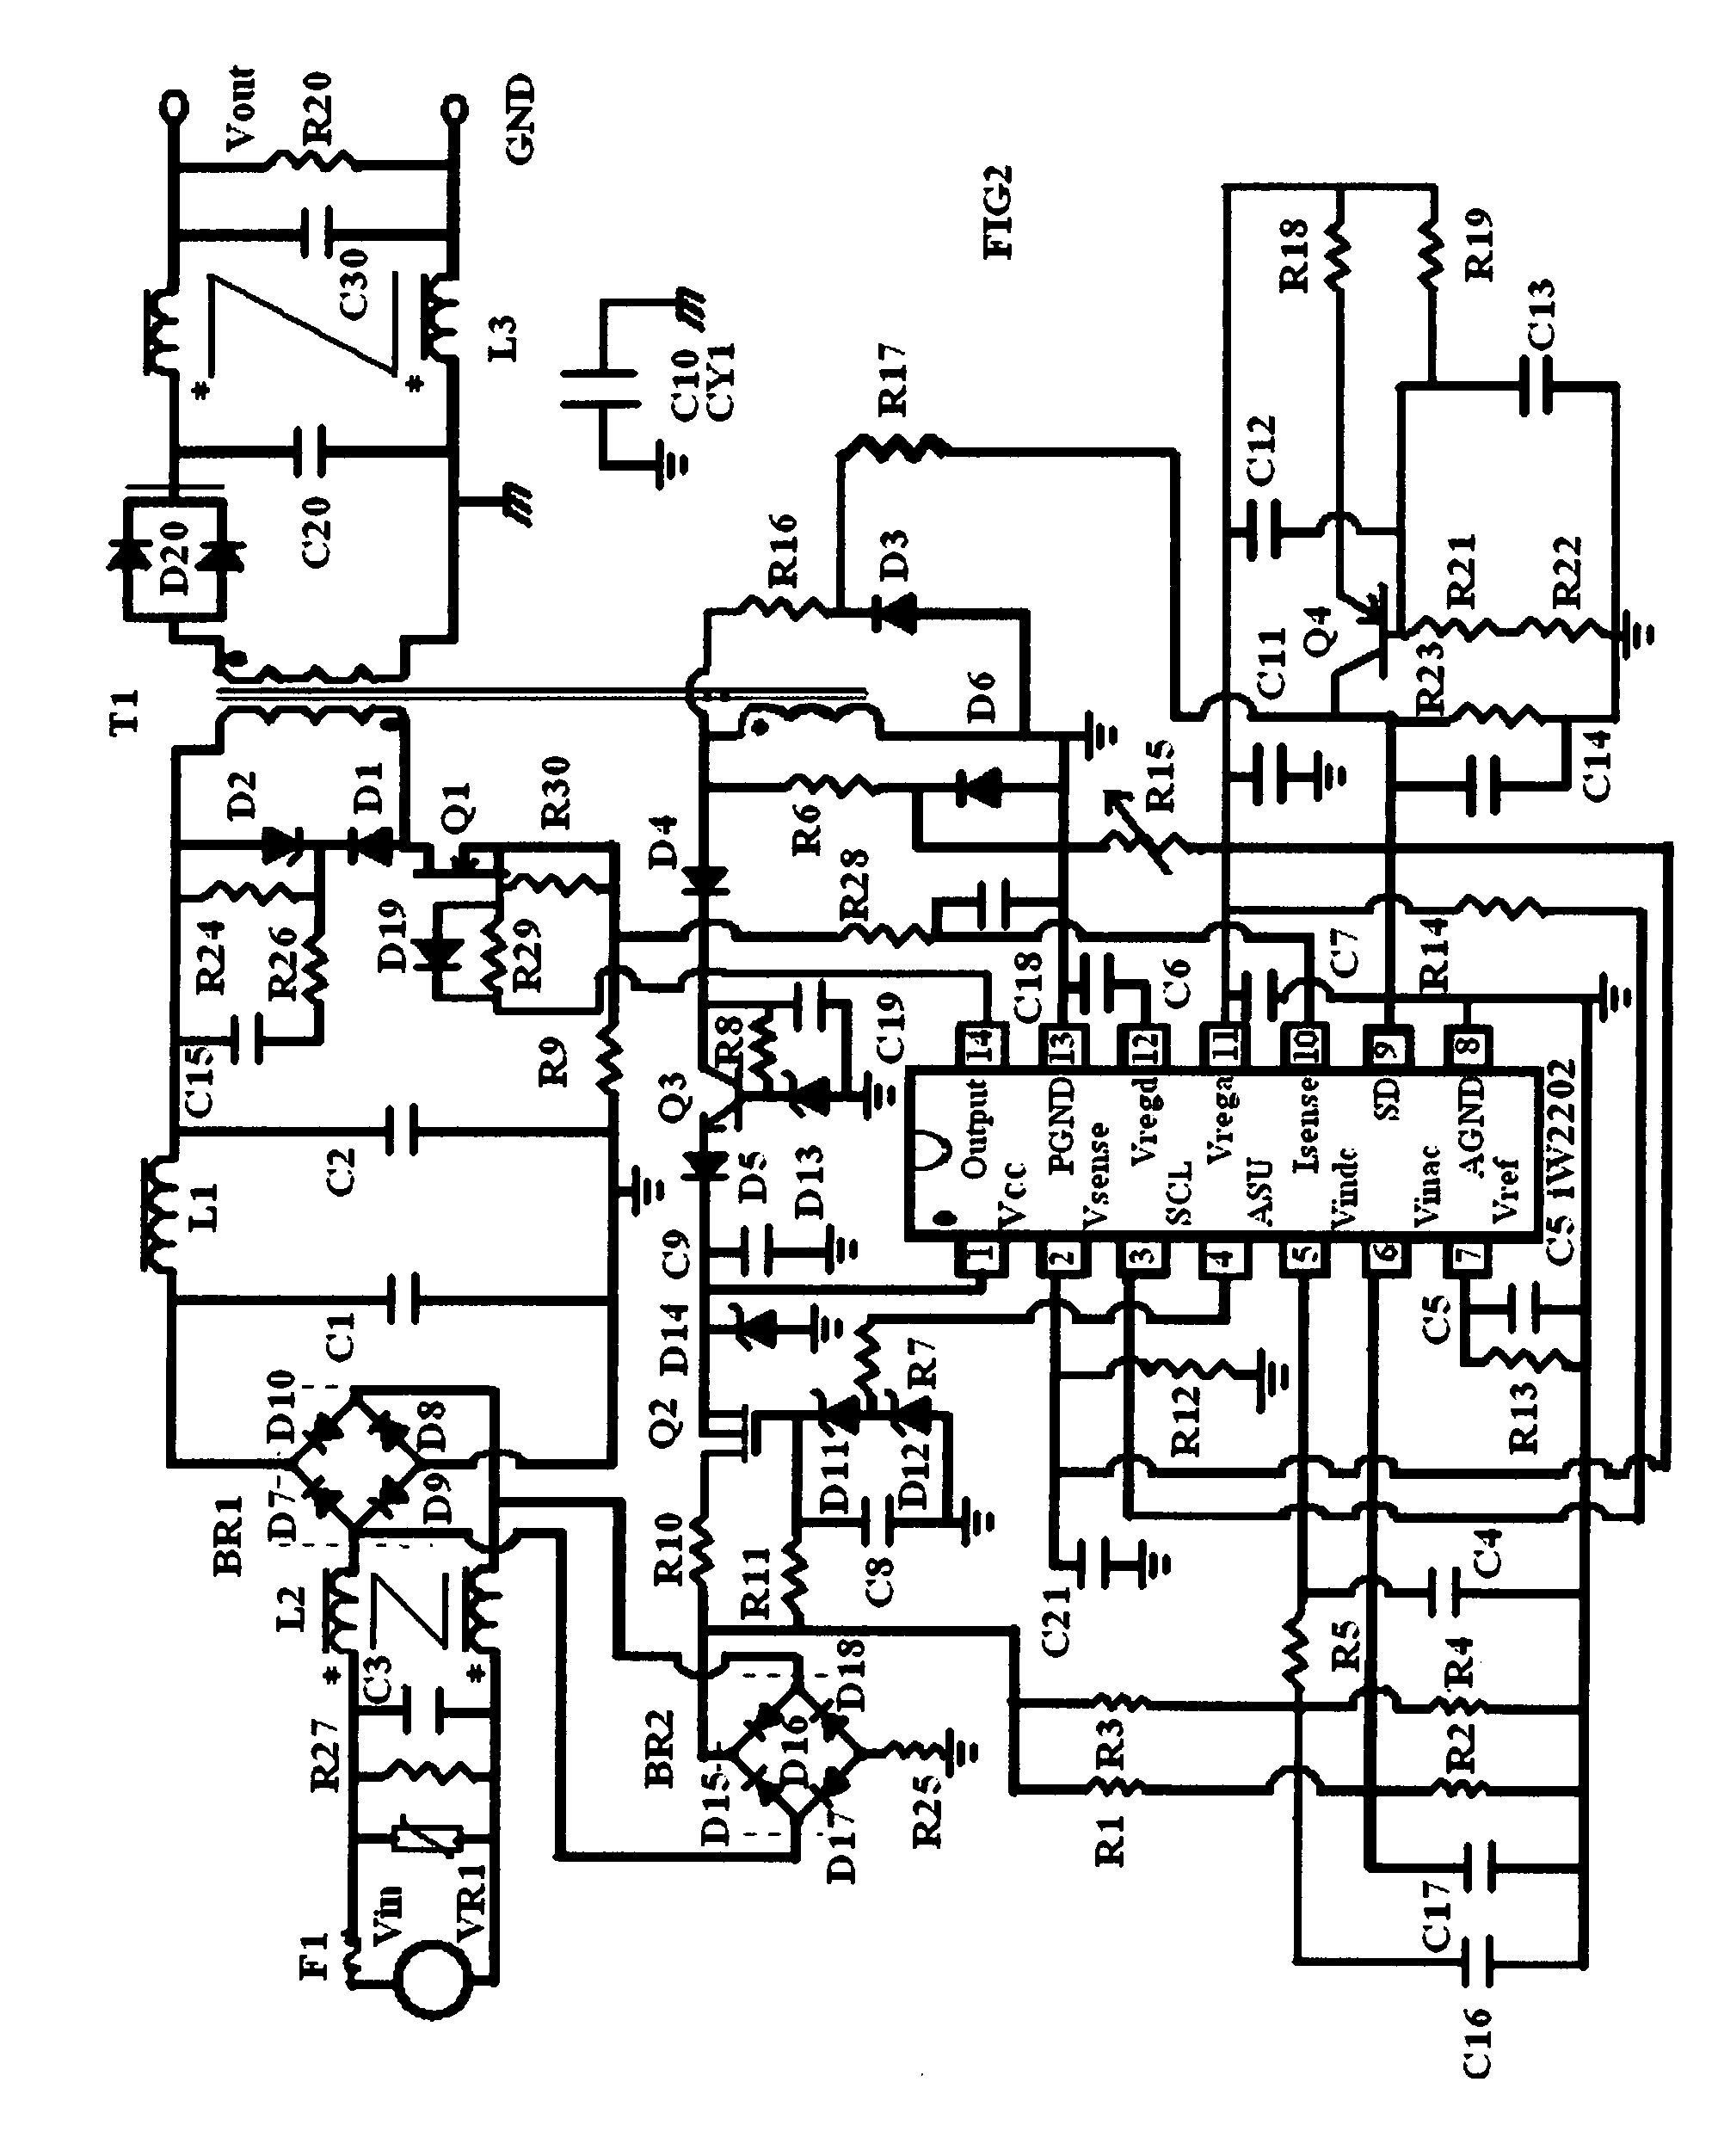 Puter hardware diagram additionally drill press wiring diagram together with repairguidecontent moreover besides bmw e46 ecu